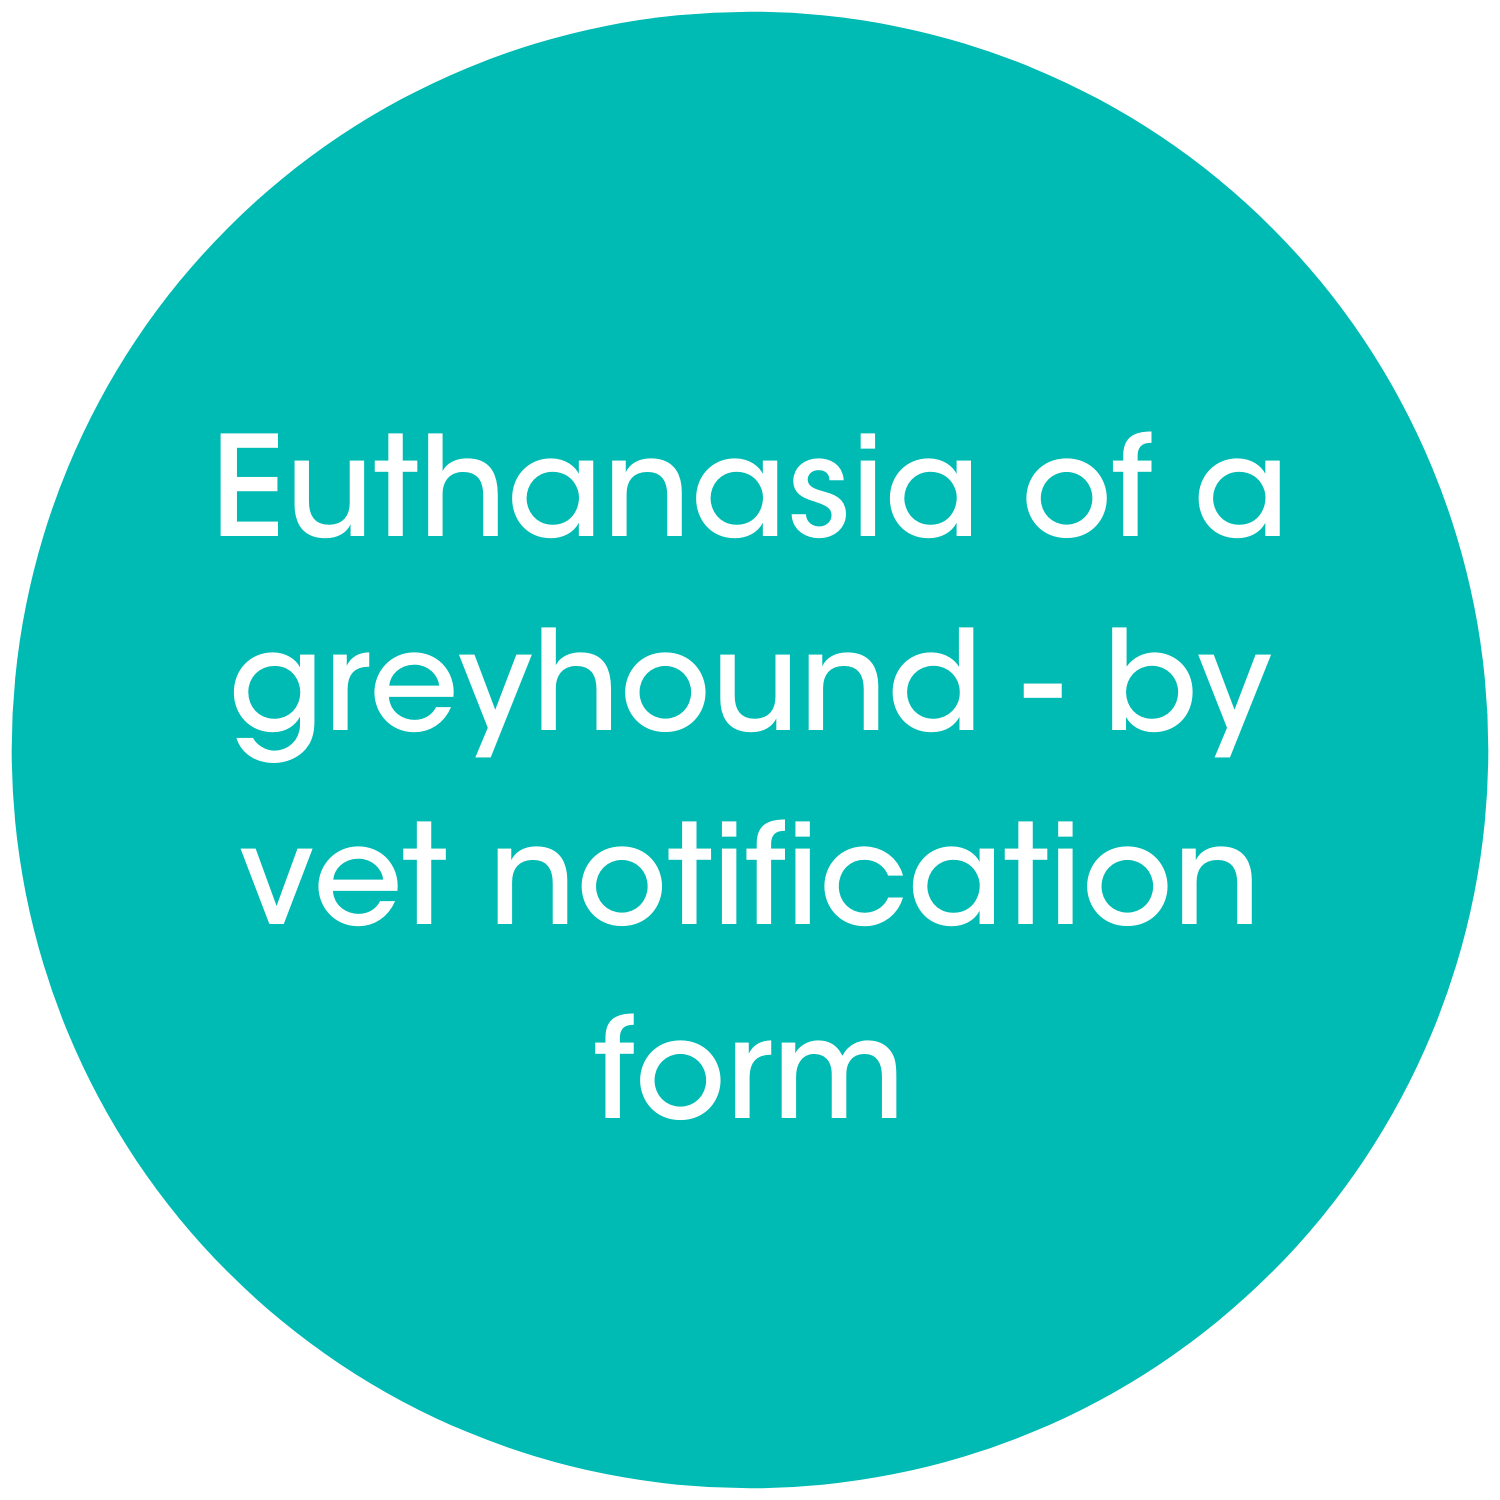 Euthanasia of a greyhound notification link